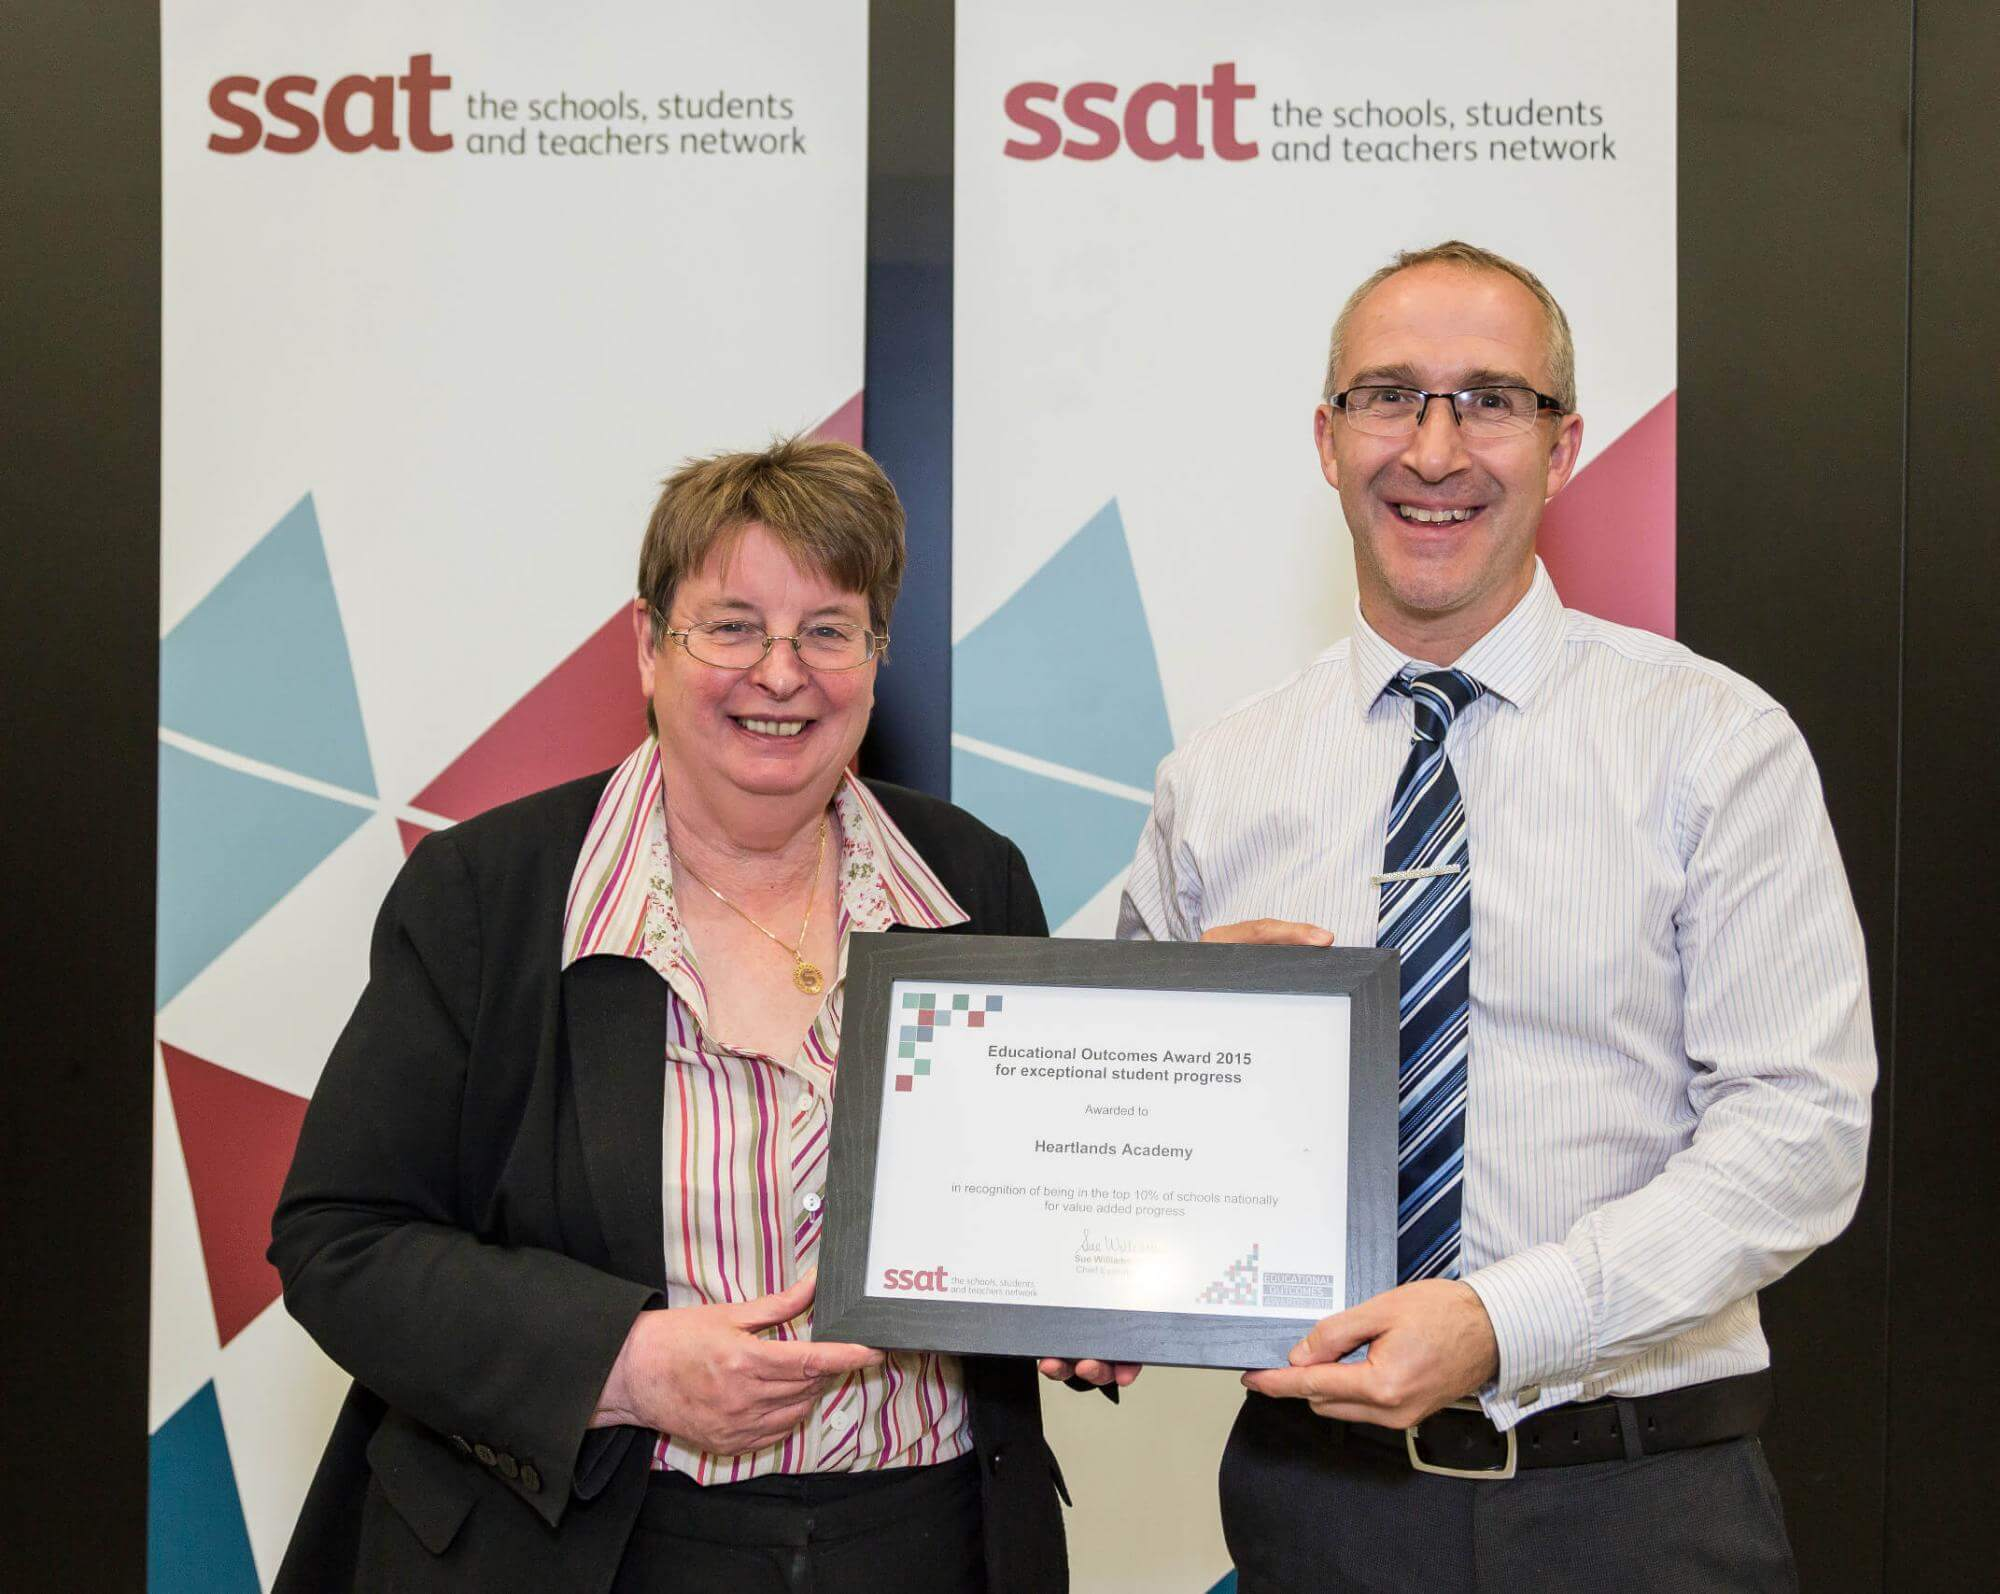 SSAT Educational Outcomes Award 2015